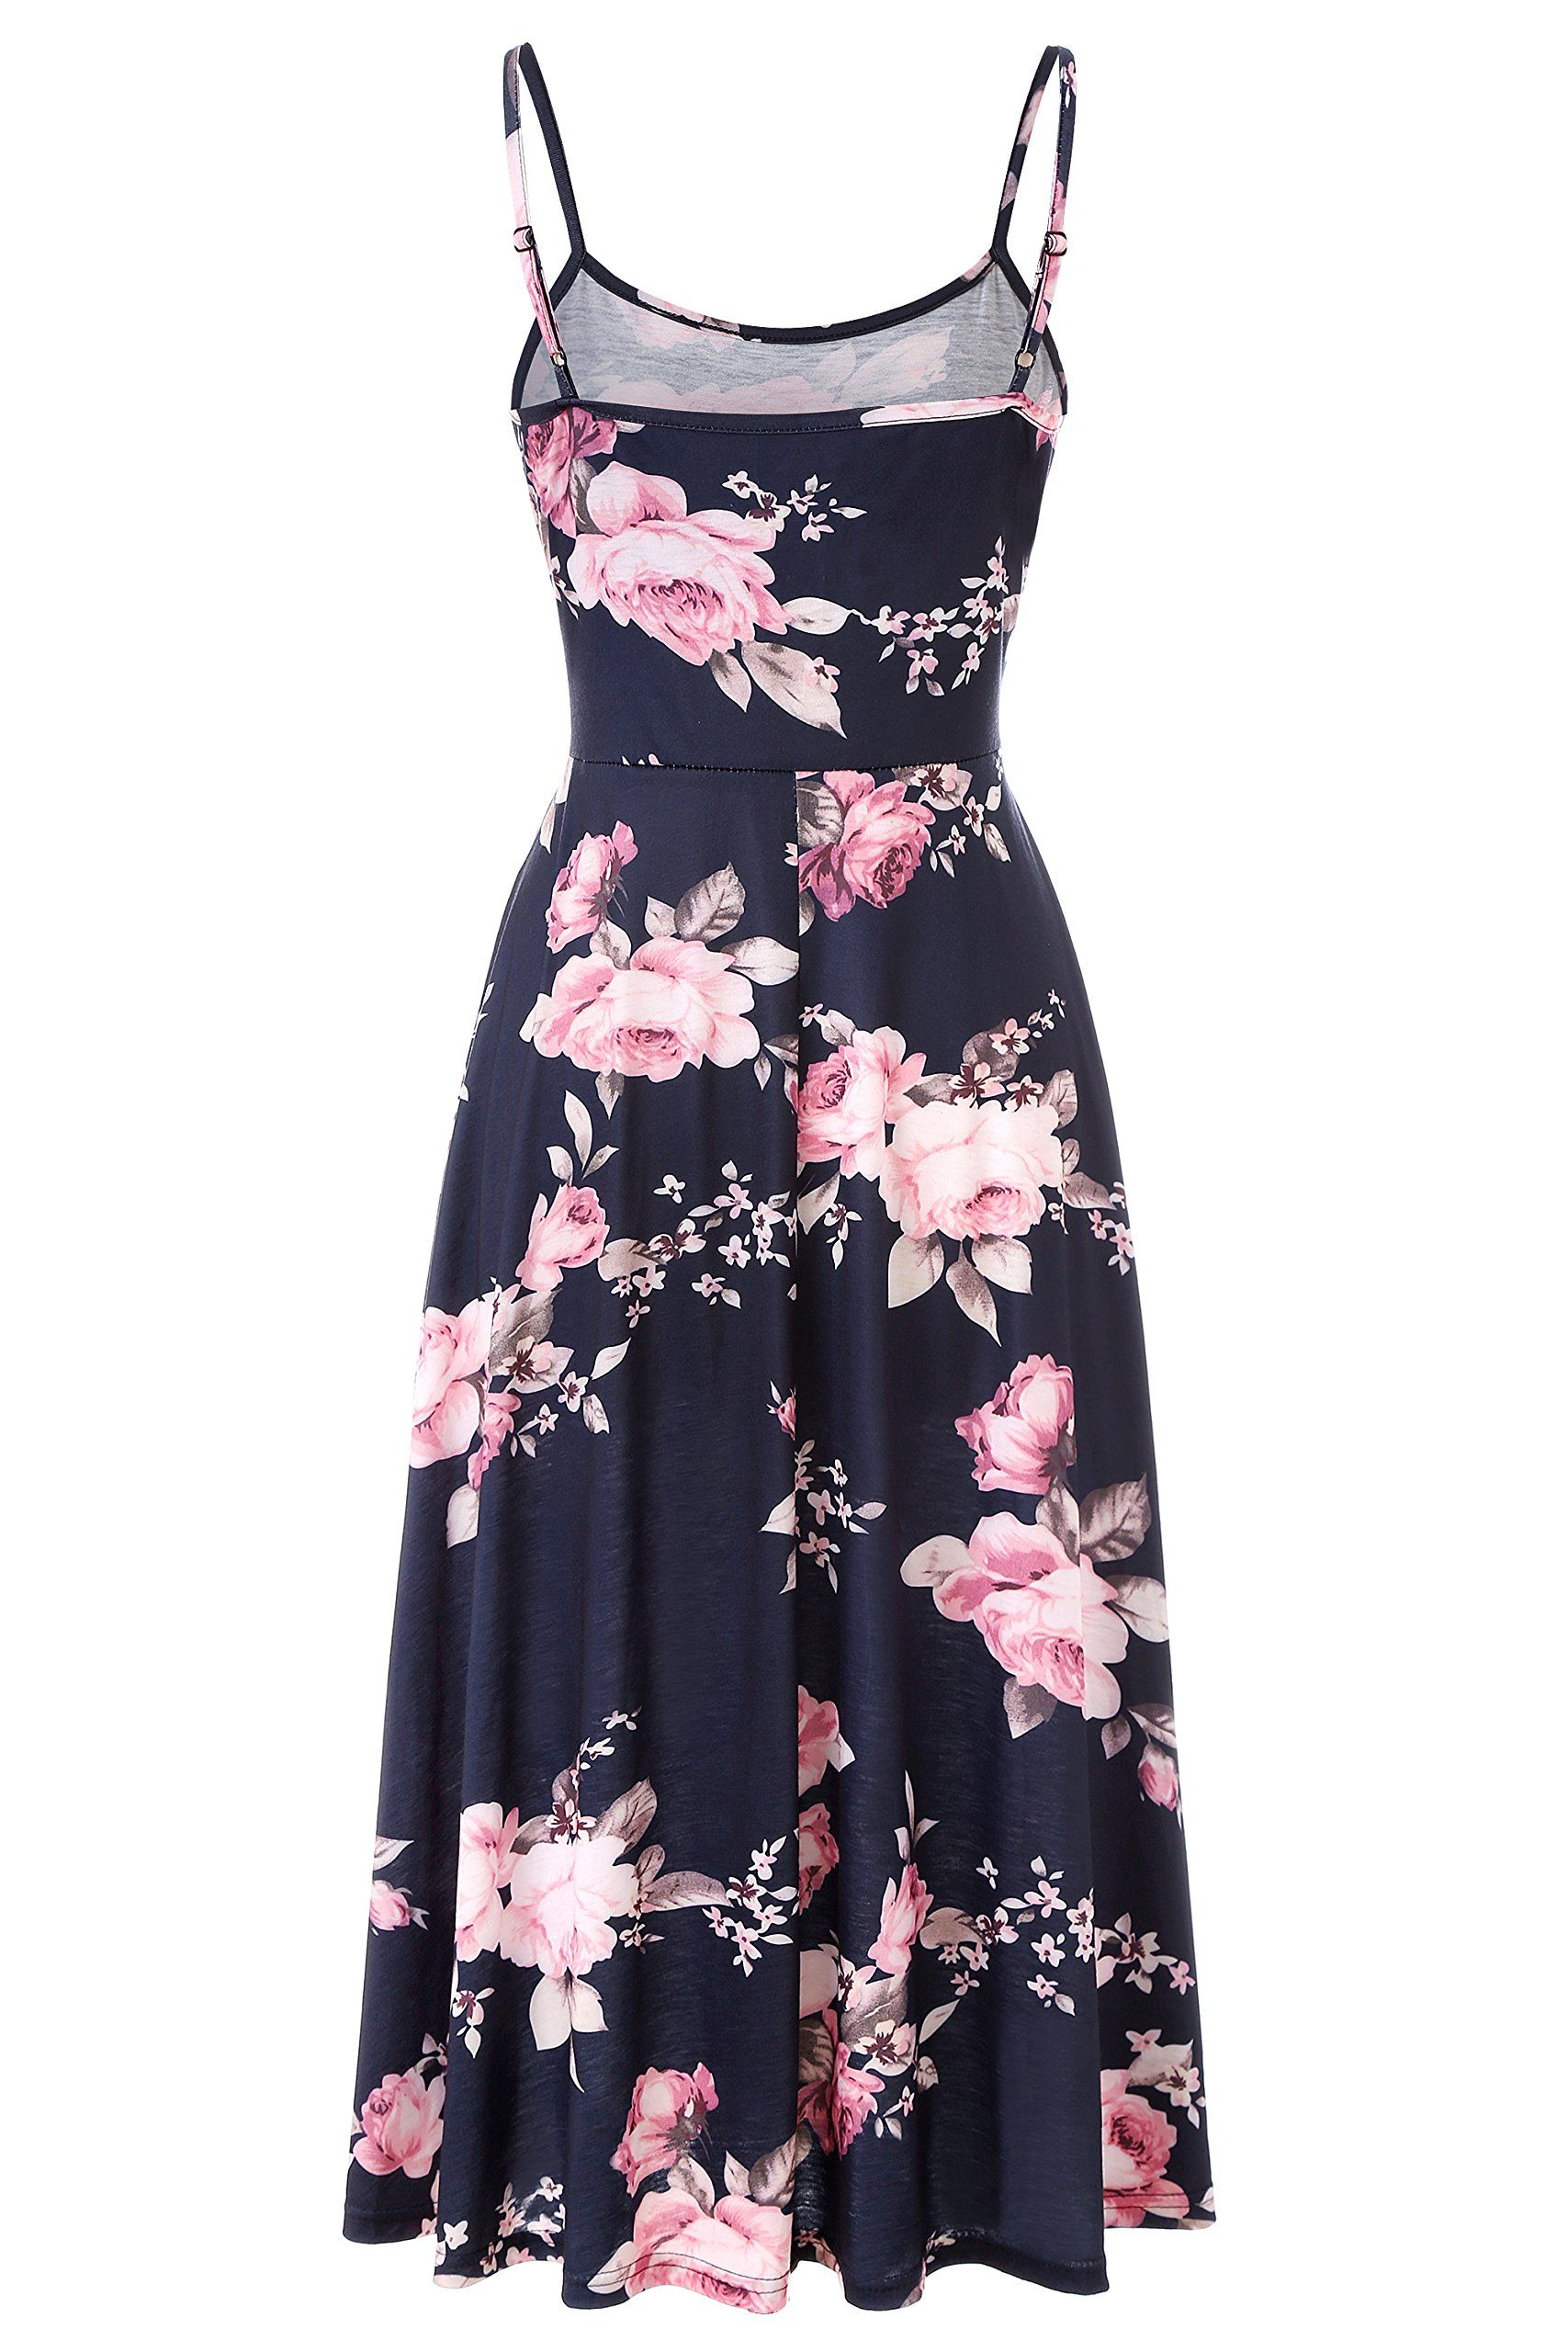 a41c91b6eb Viracy Fit and Flare Dress Womens Adjustable Spaghetti Strap Sleeveless Skater  Dresses Floral Pattern Flared Flattering